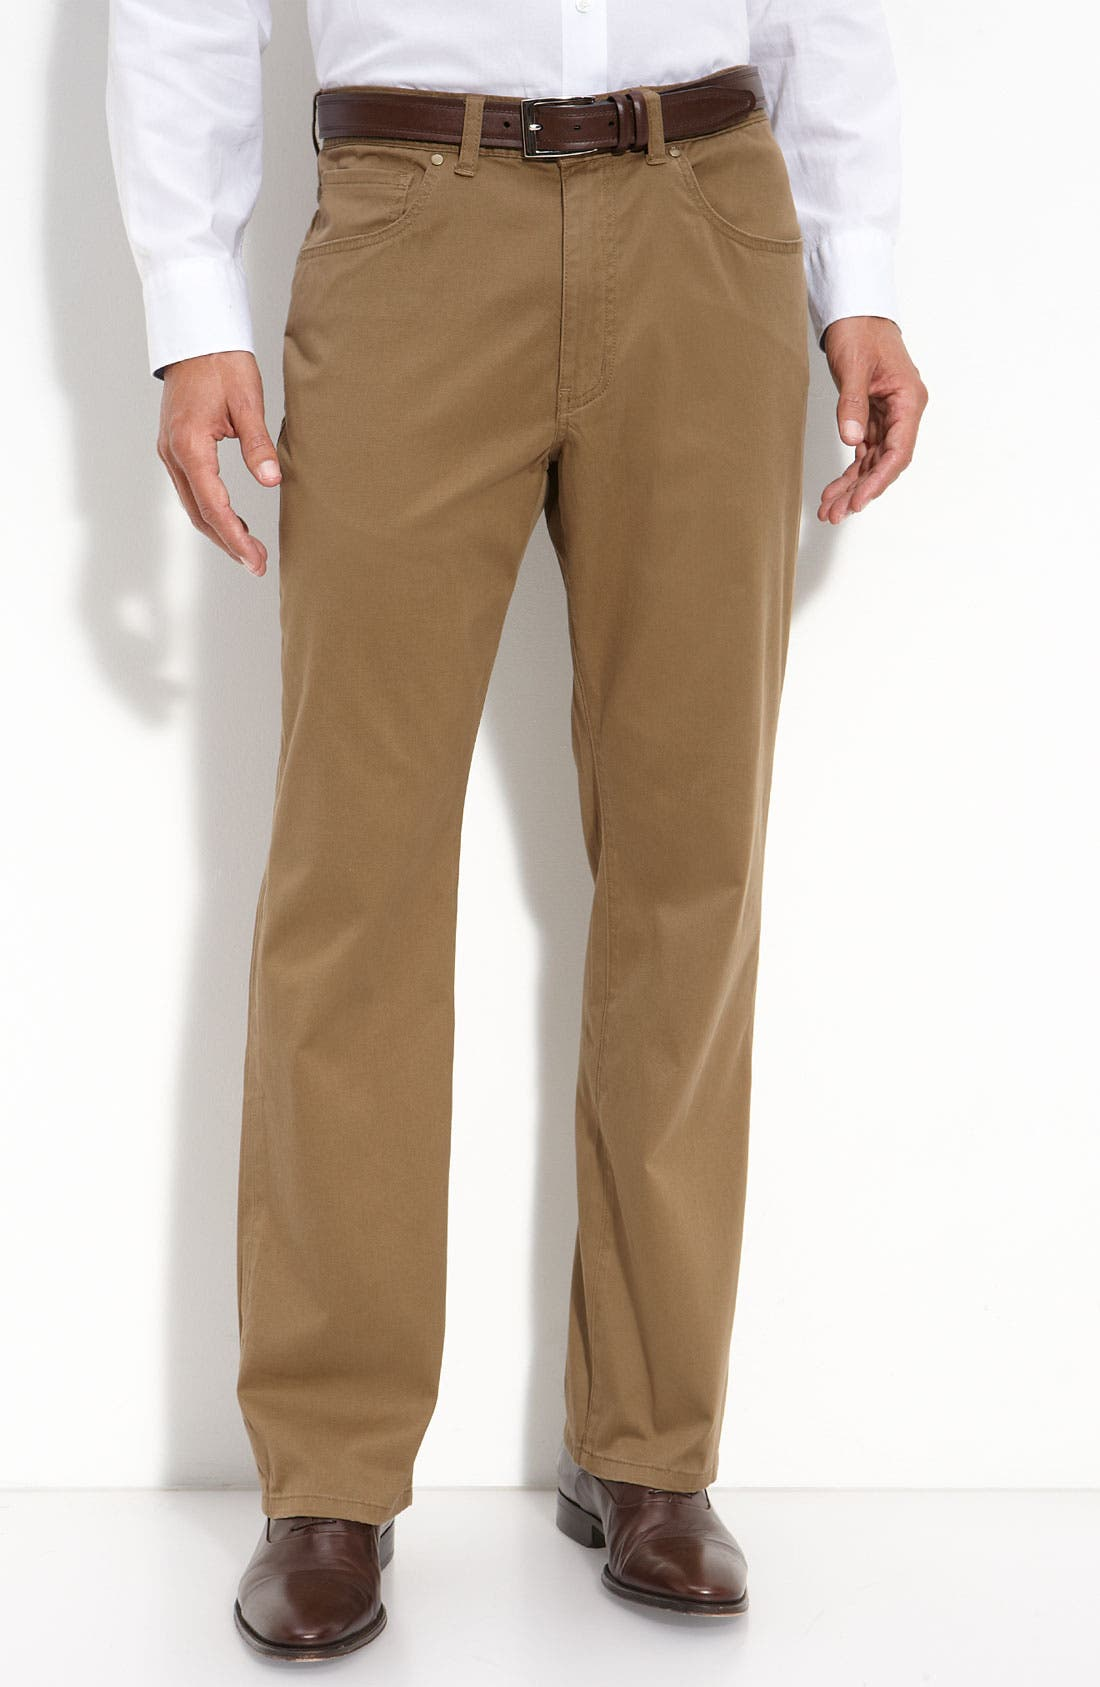 Alternate Image 1 Selected - Cutter & Buck 'Colin' Twill Pants (Big & Tall)